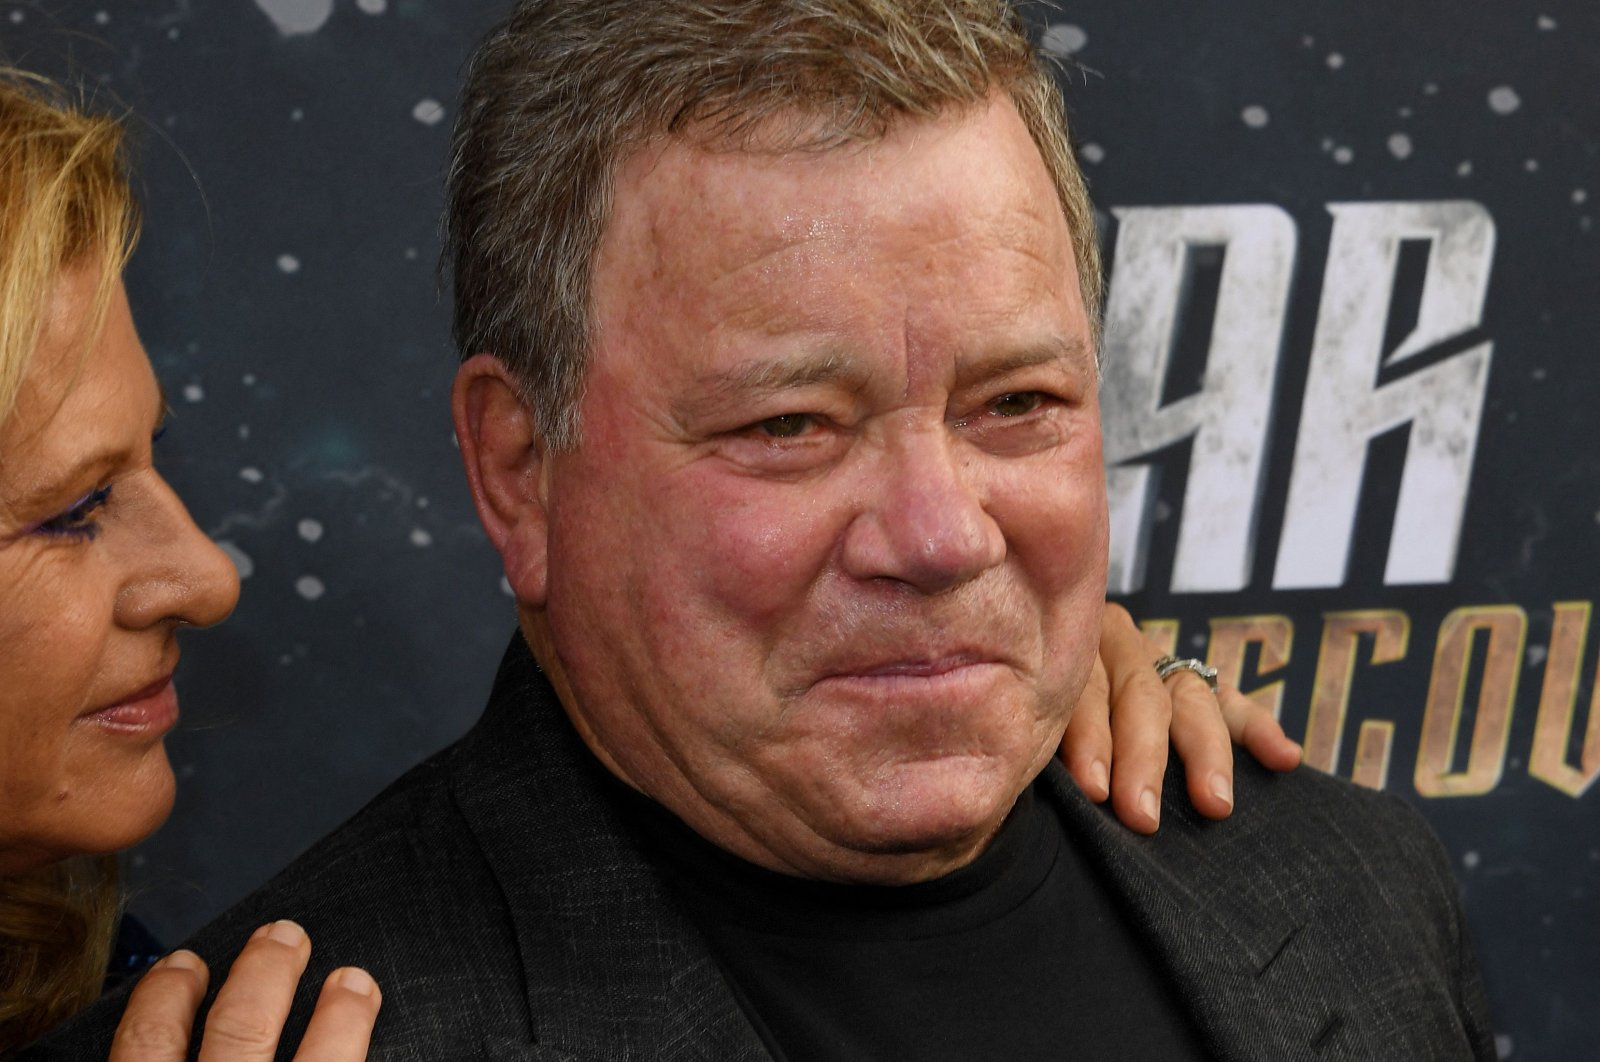 """Elizabeth Shatner (L) and William Shatner arrive for the premiere of CBS's """"Star Trek: Discovery"""" at The Cinerama Dome in Hollywood, California, U.S., Sept. 19, 2017. (AFP Photo)"""